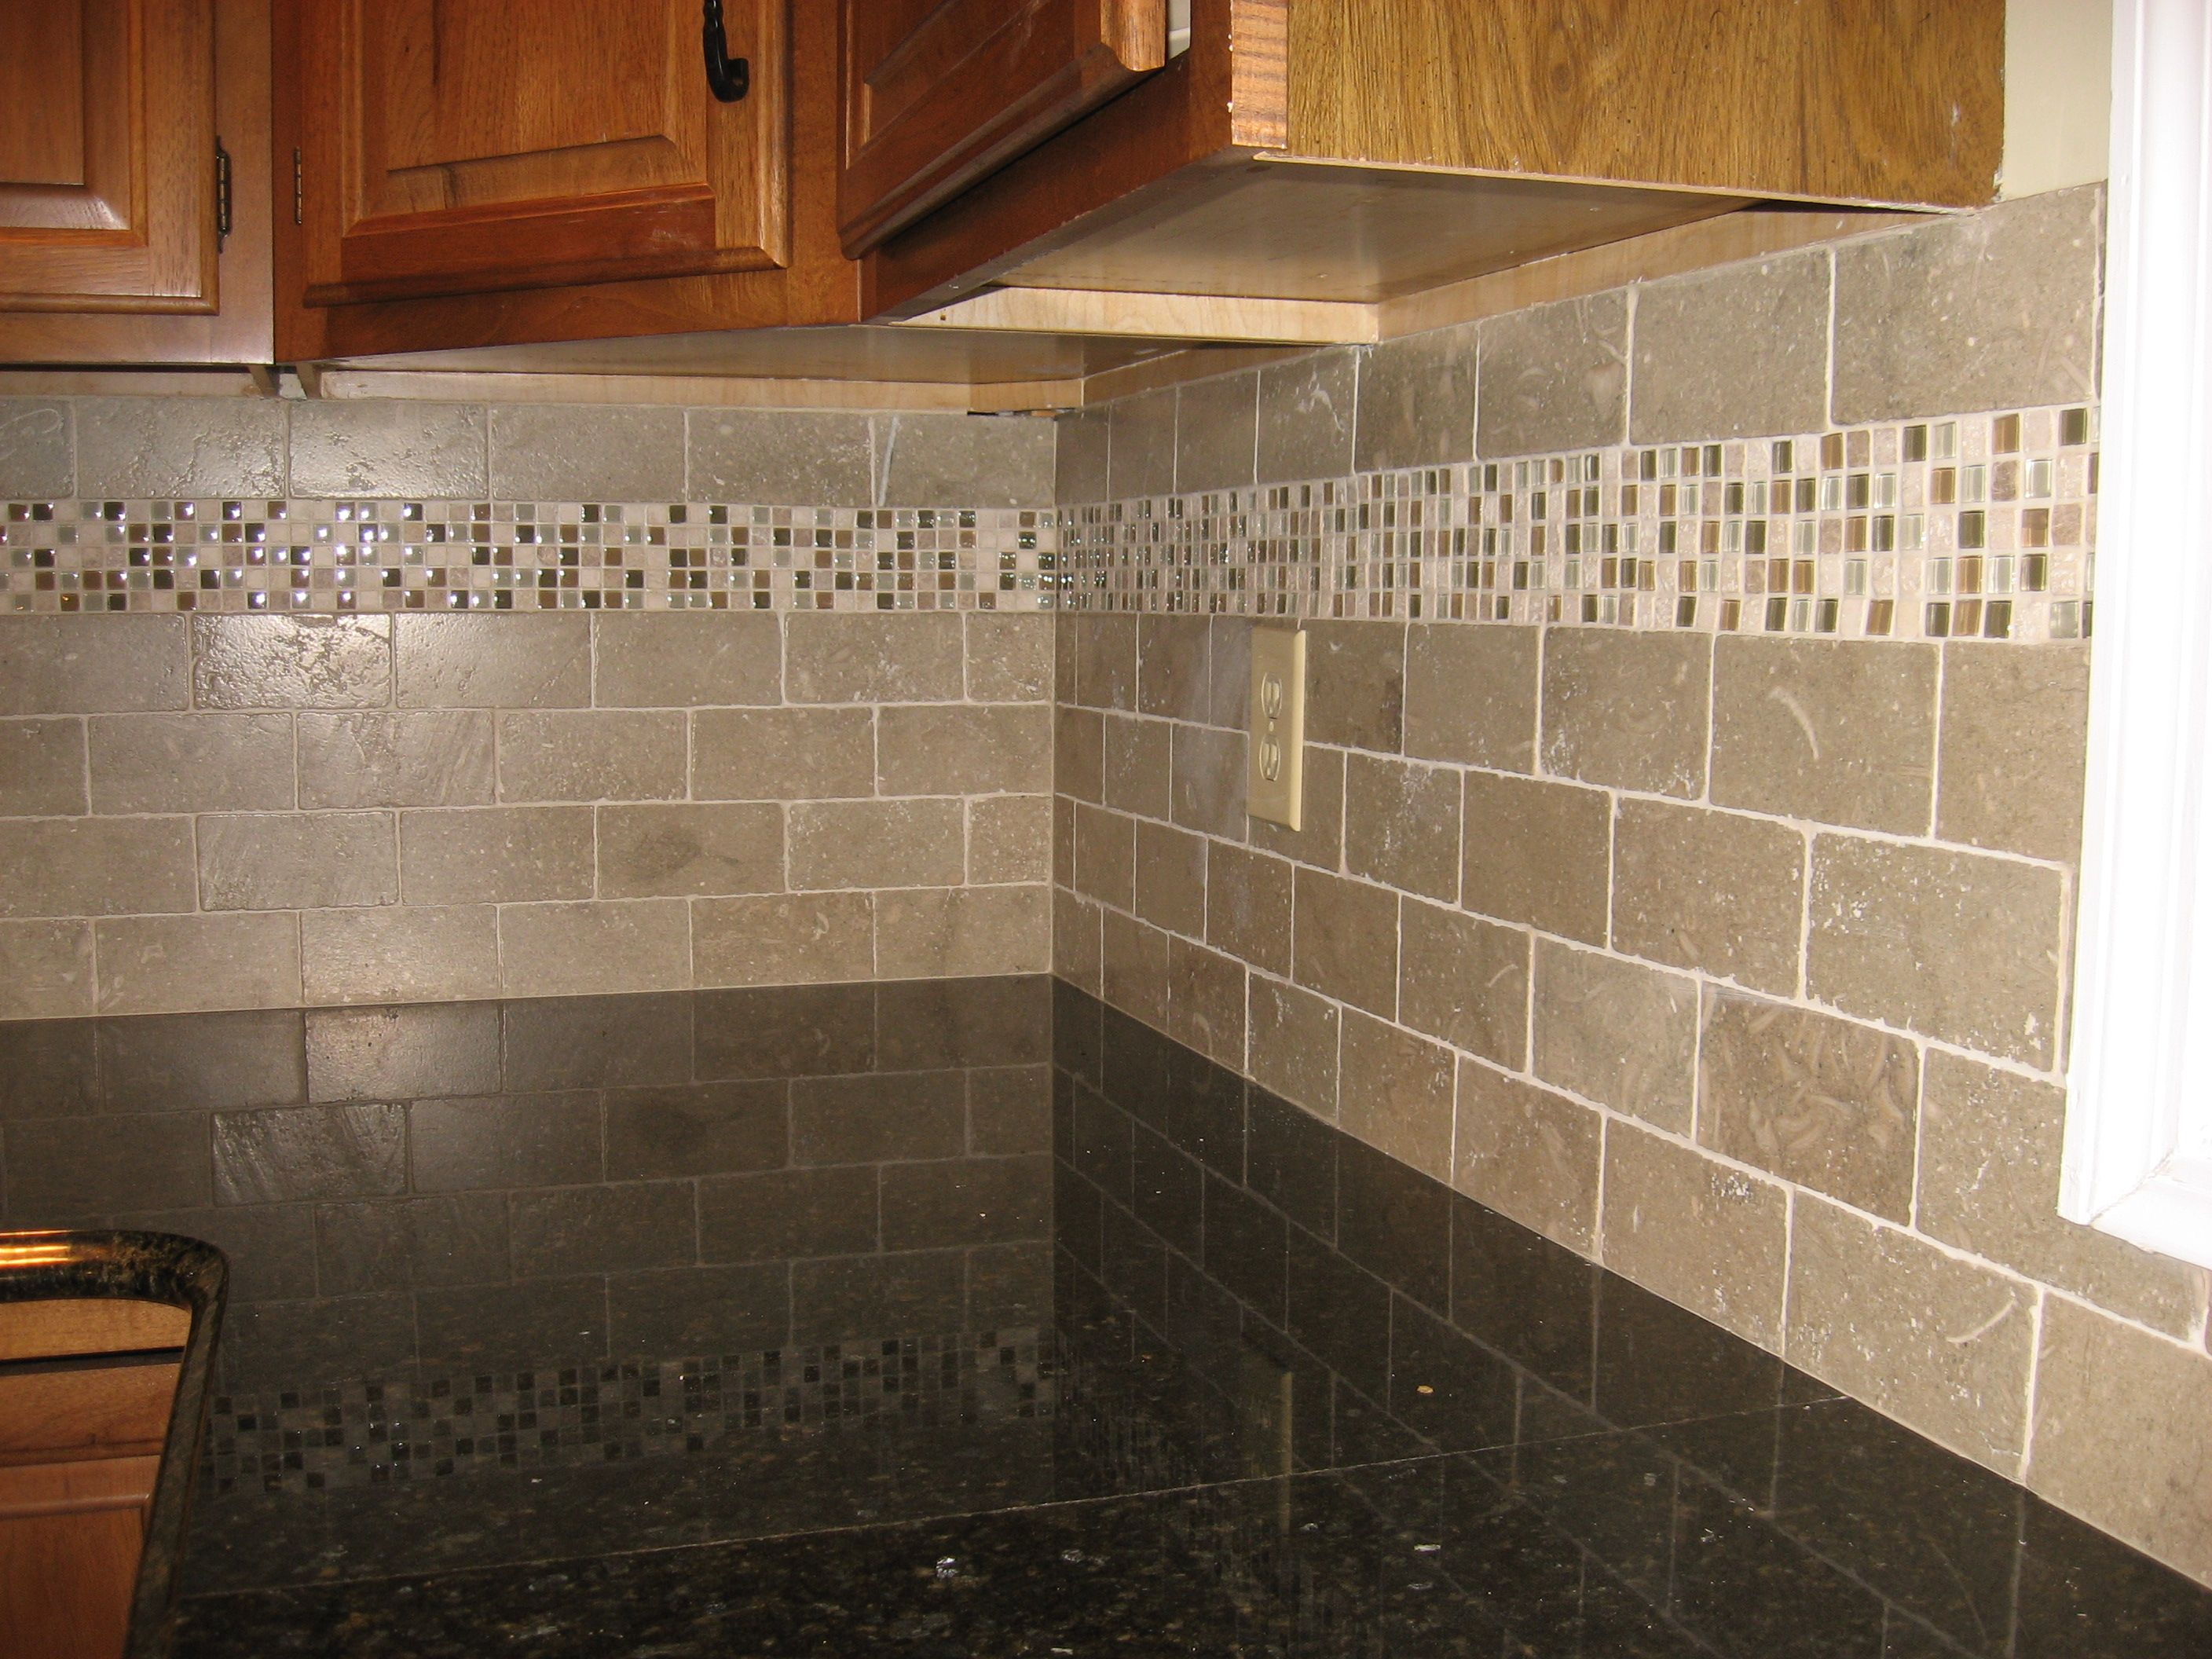 subway tiles with mosaic accents